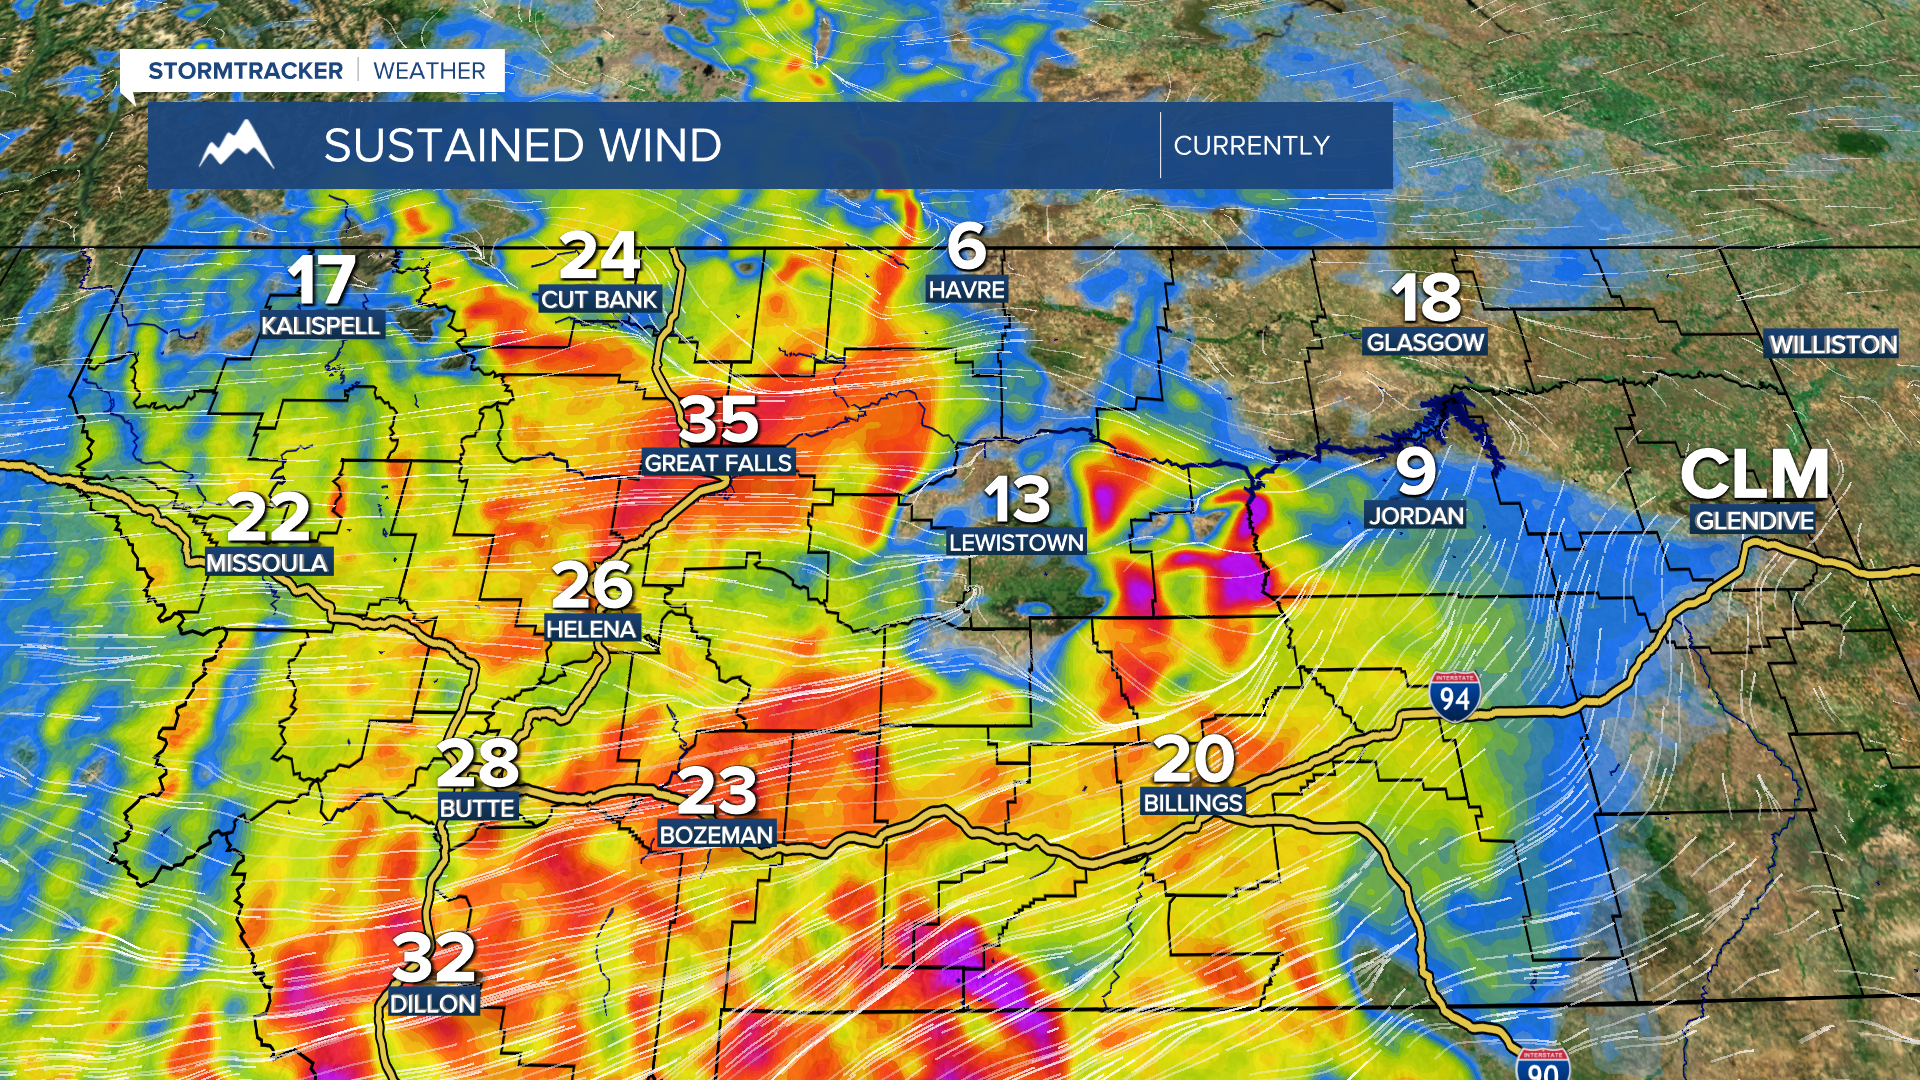 MT Current Sustained Wind